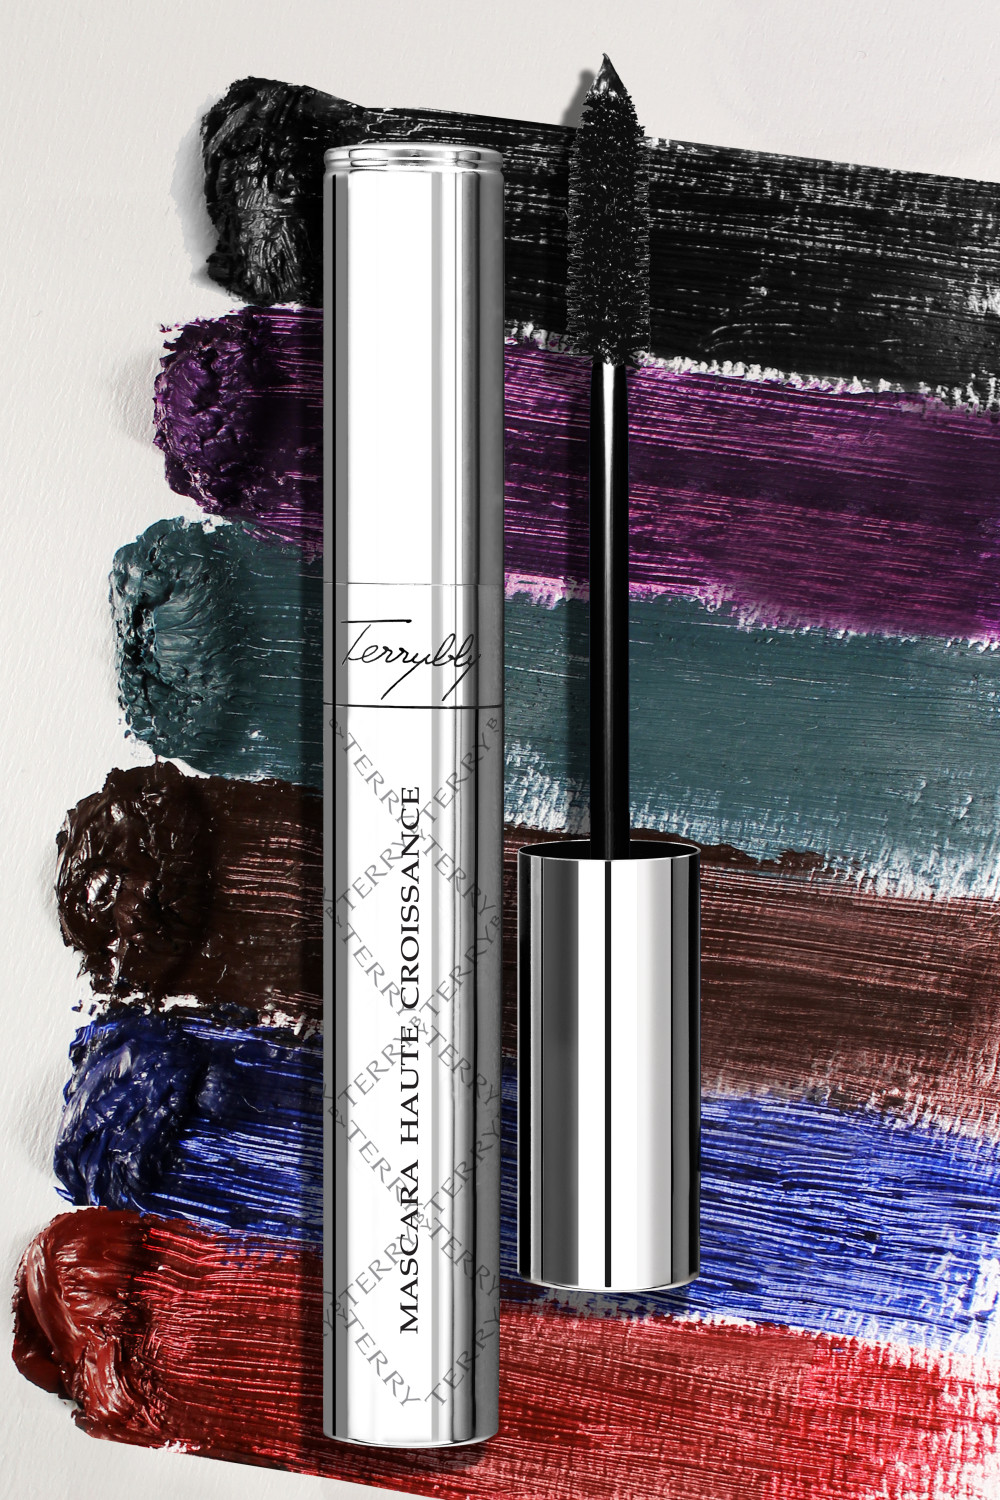 Graphism - Automne 2013 - Gamme - Mascara Terrybly - BD